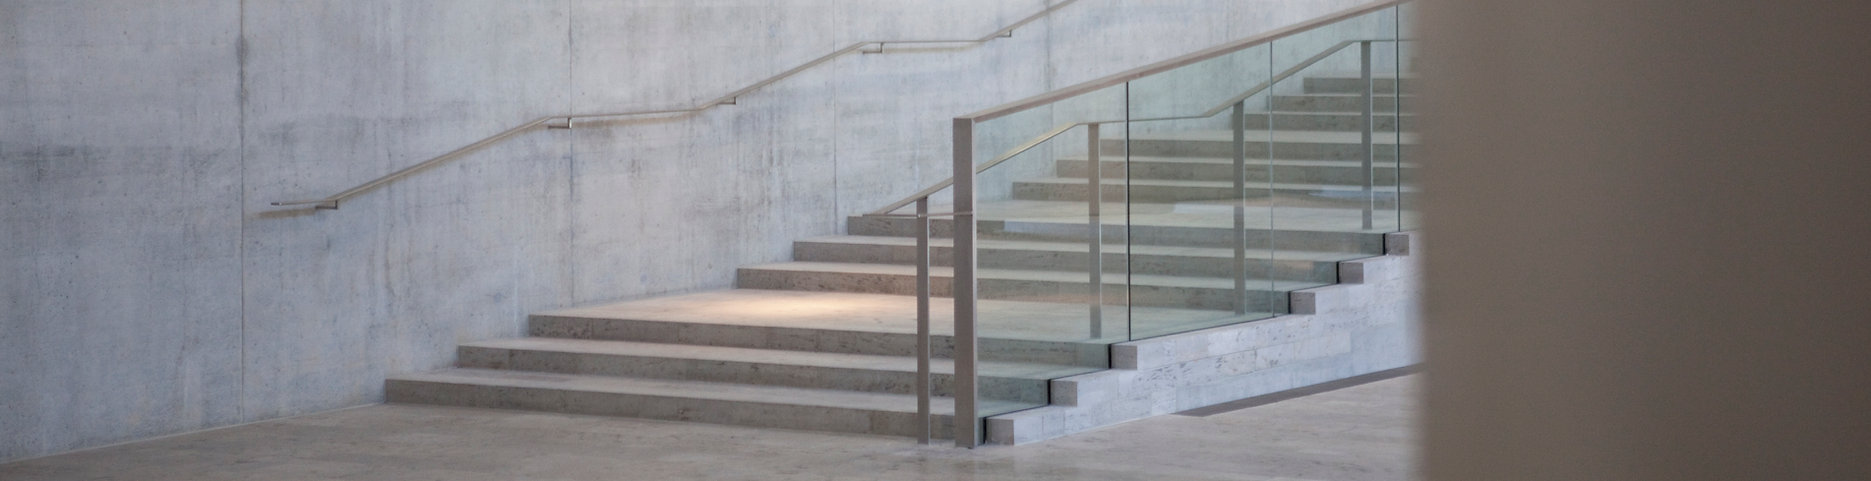 Light on the Stairs